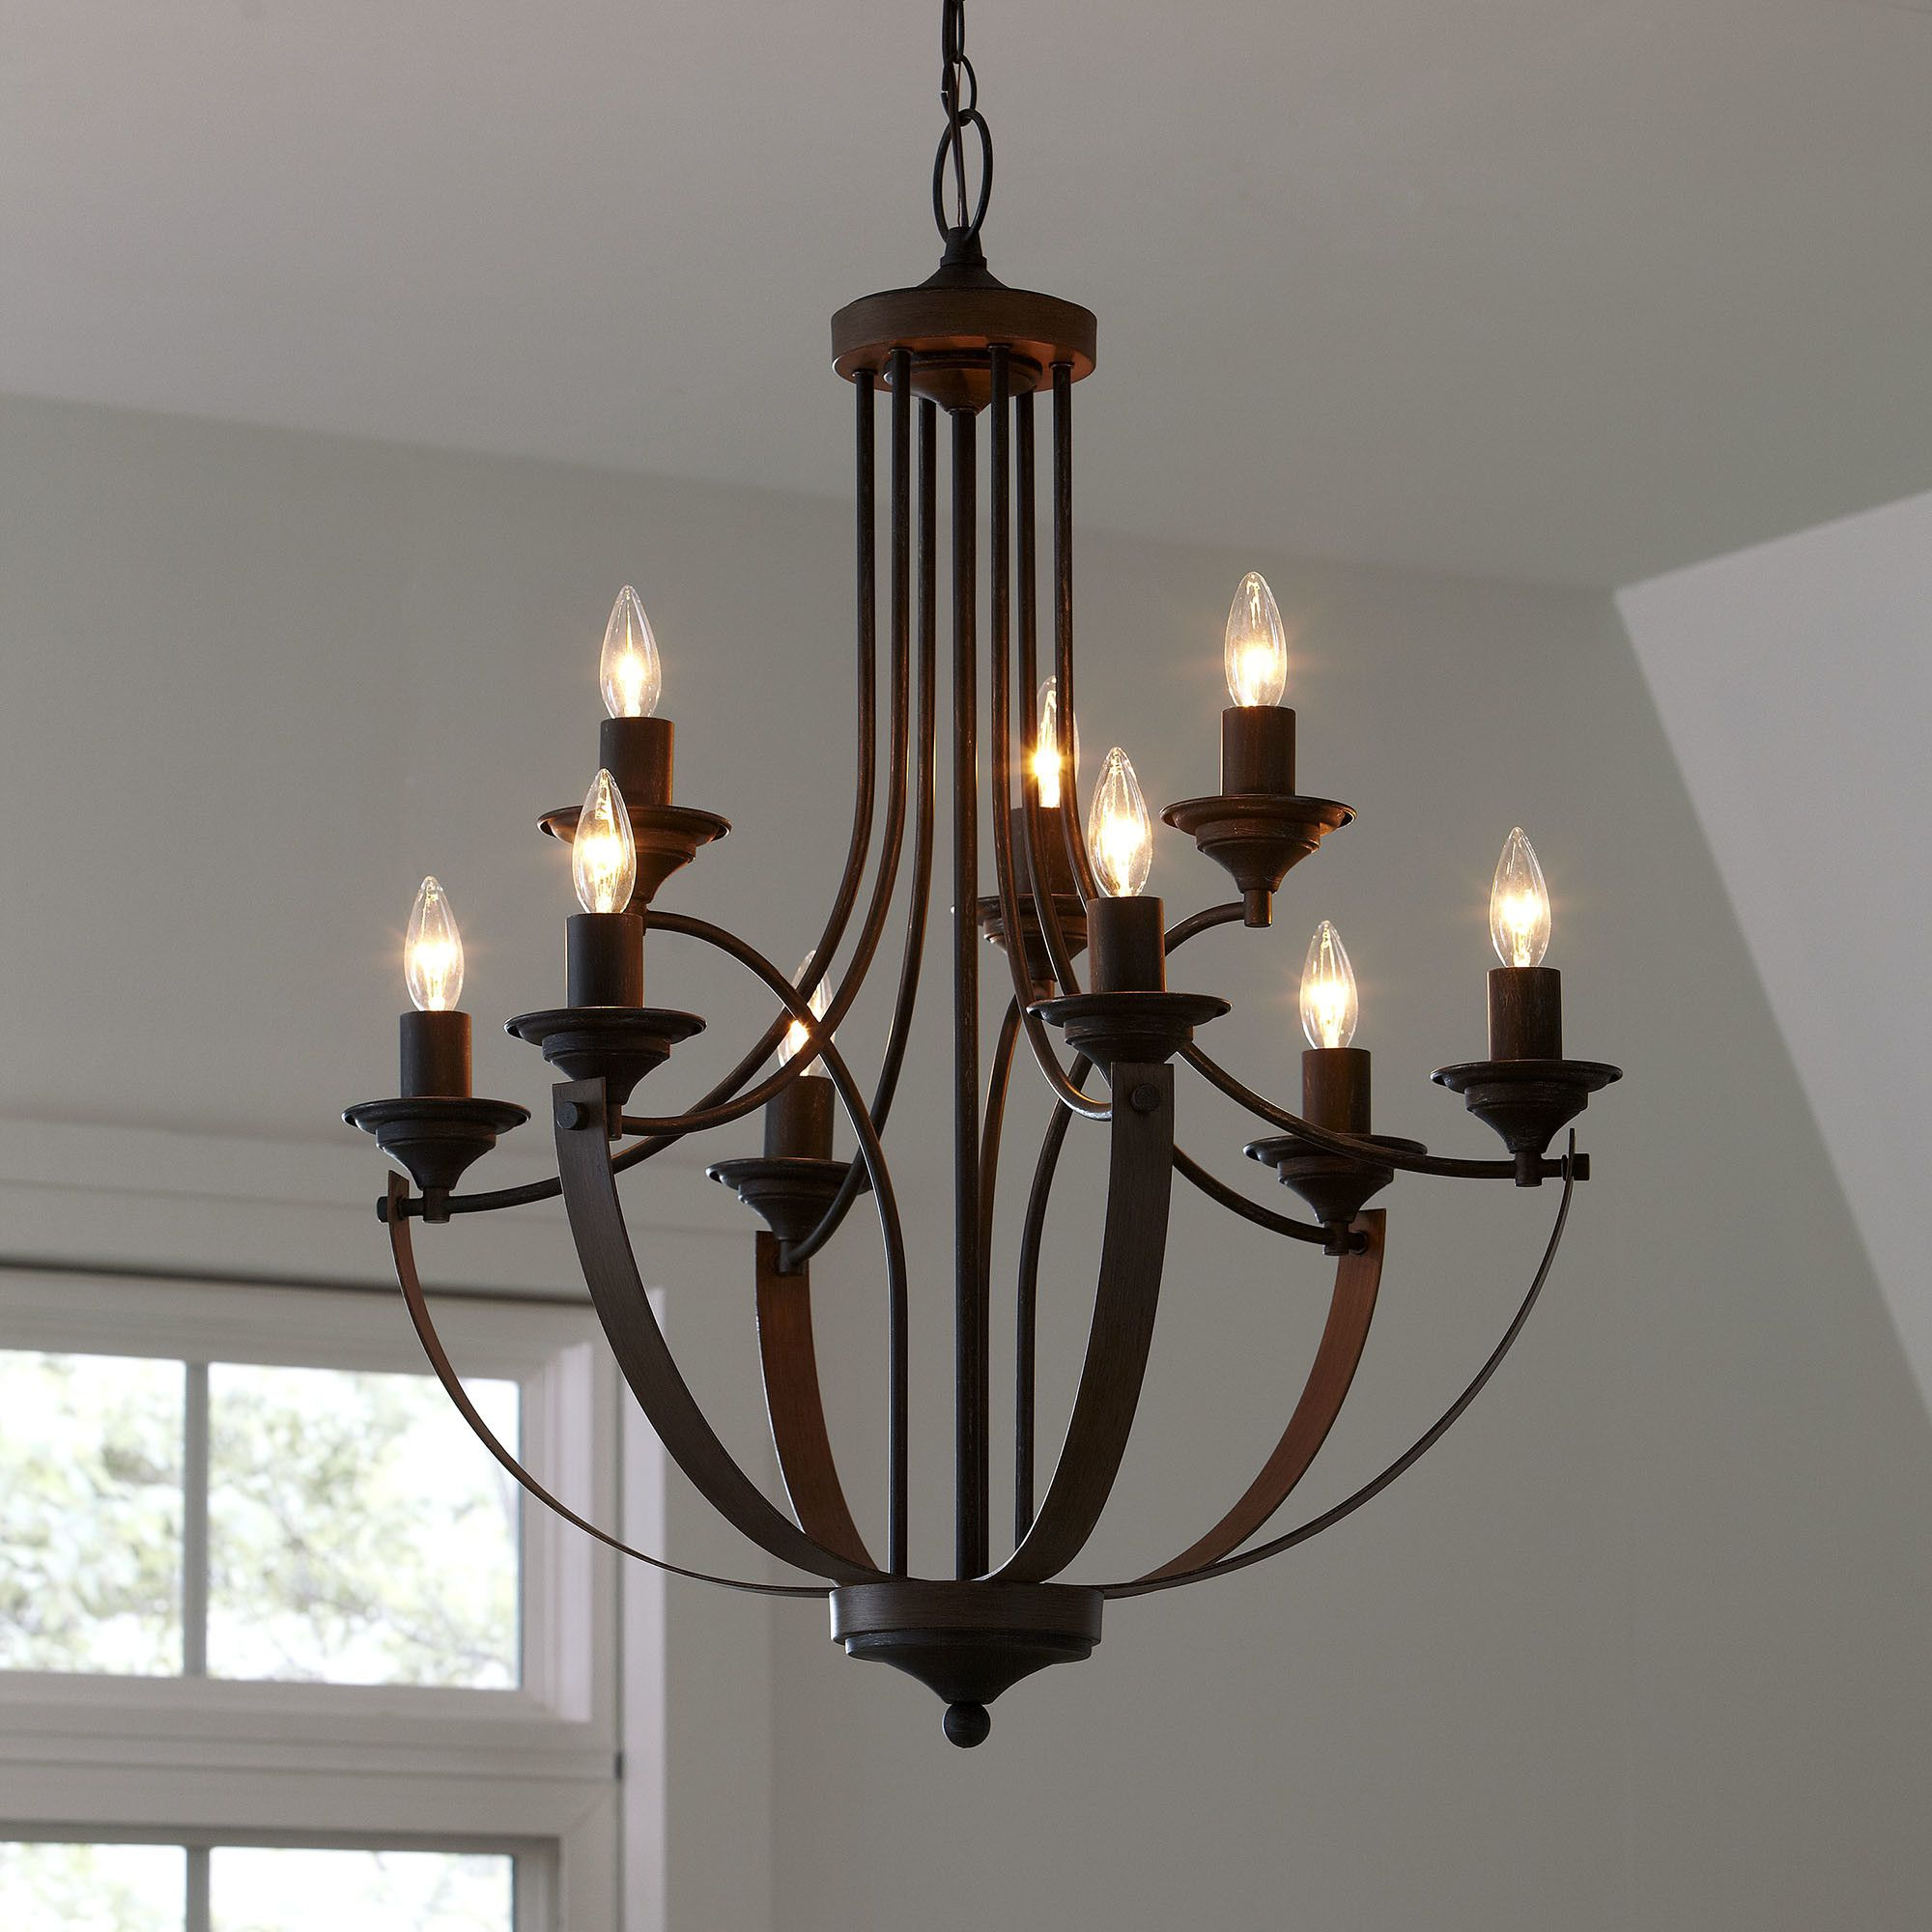 Camilla 9-Light Candle Style Chandelier | Lighting | Rustic for Camilla 9-Light Candle Style Chandeliers (Image 8 of 30)